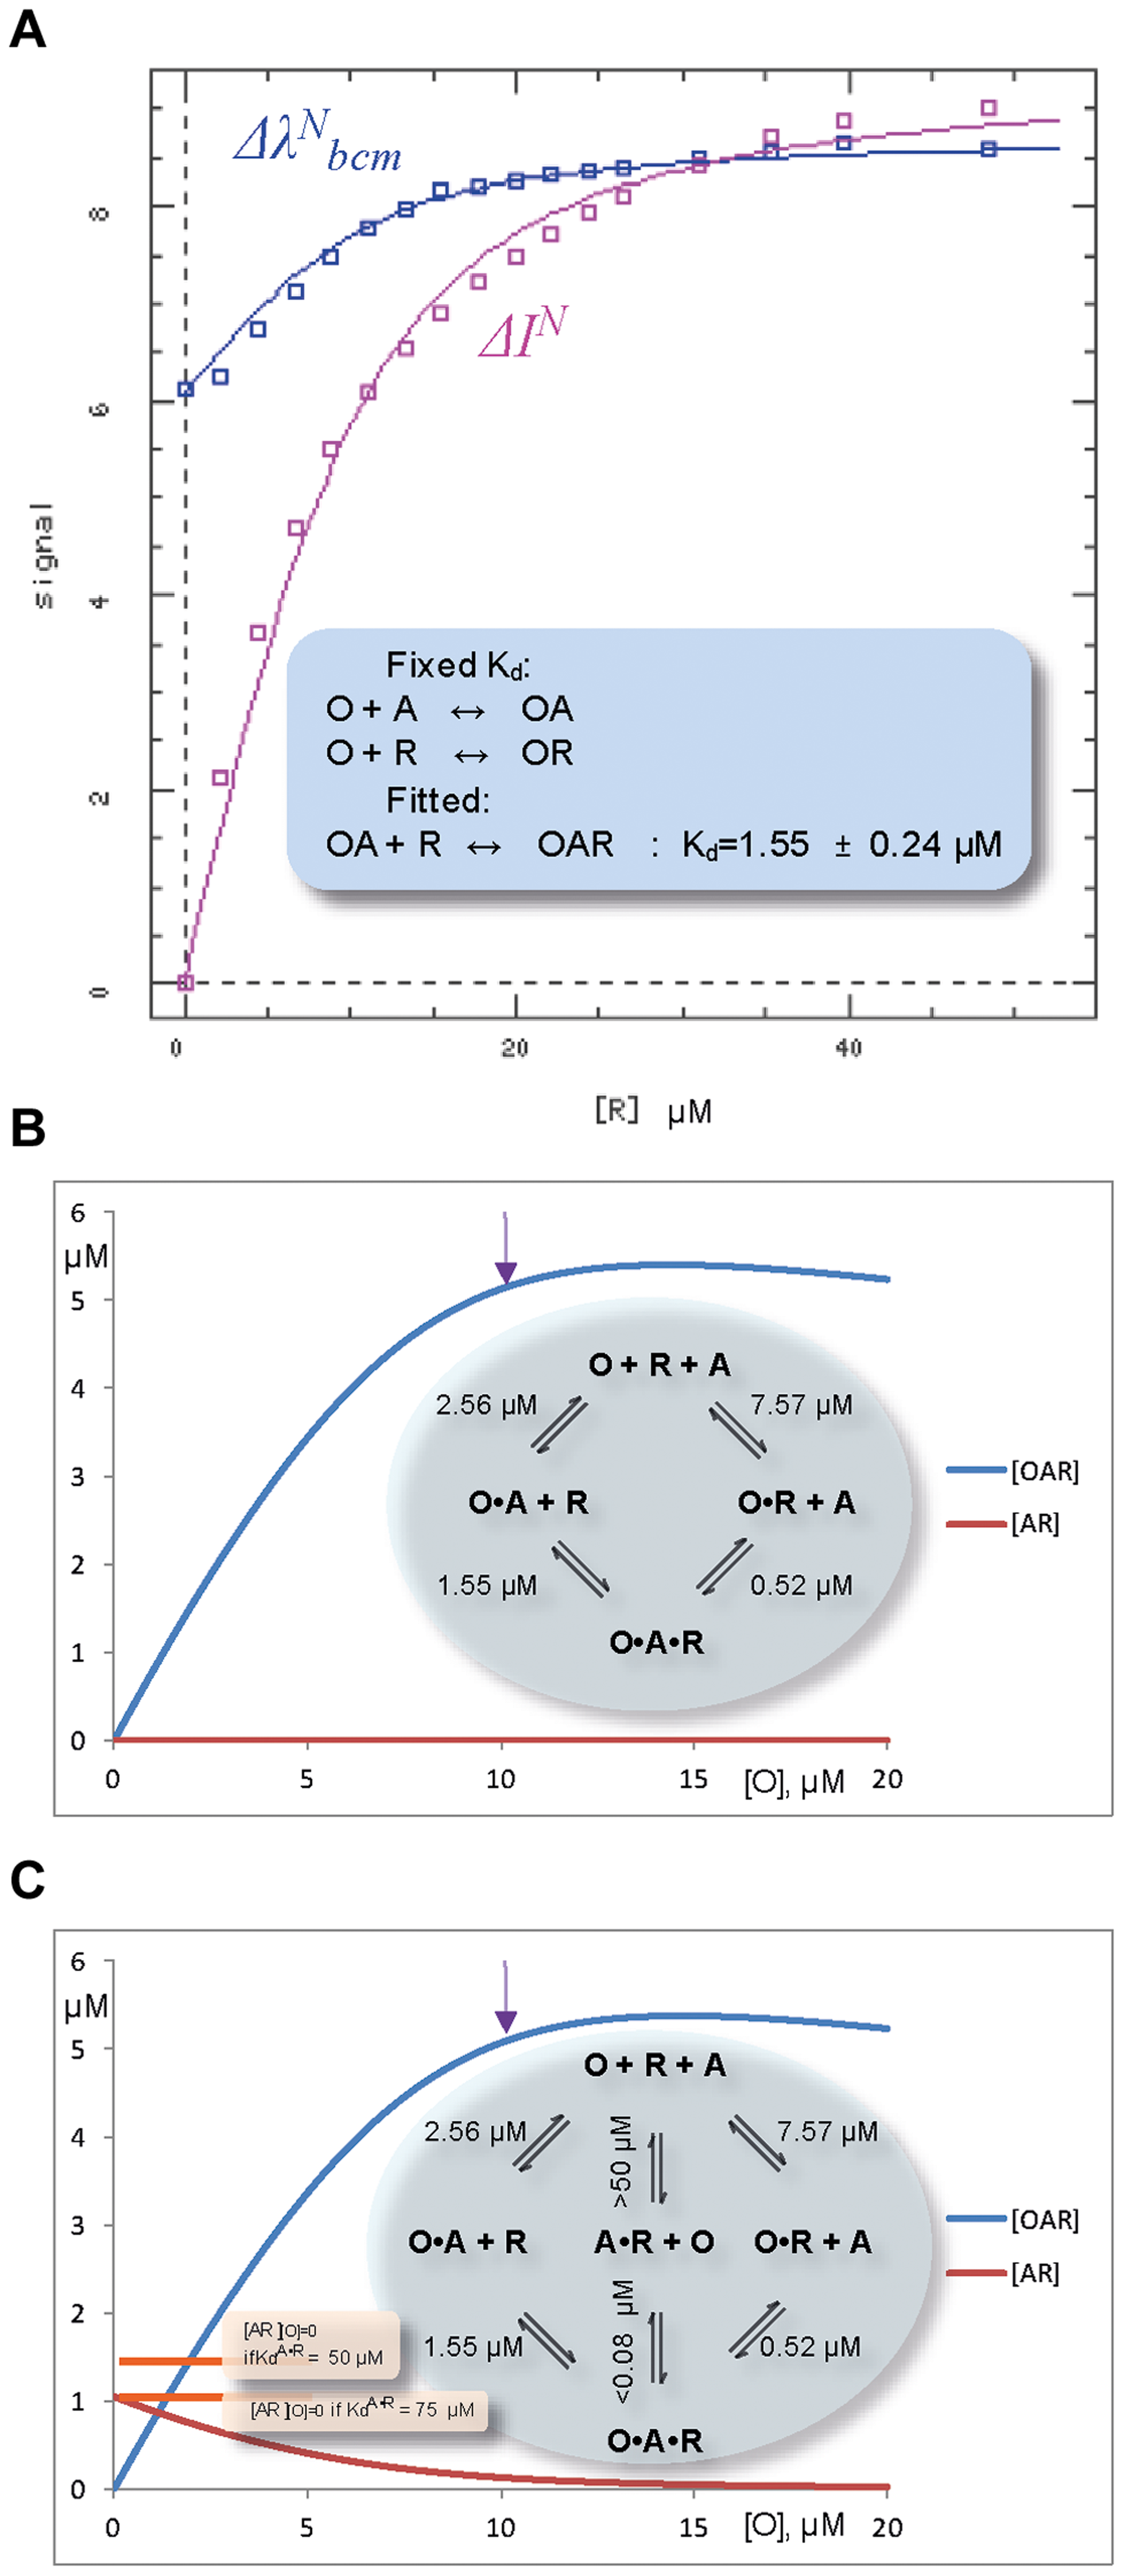 Fluorescent studies and simulations of the ternary complex formation between ORF57, O, fragment of viral RNA, R, and ALYREF, A.